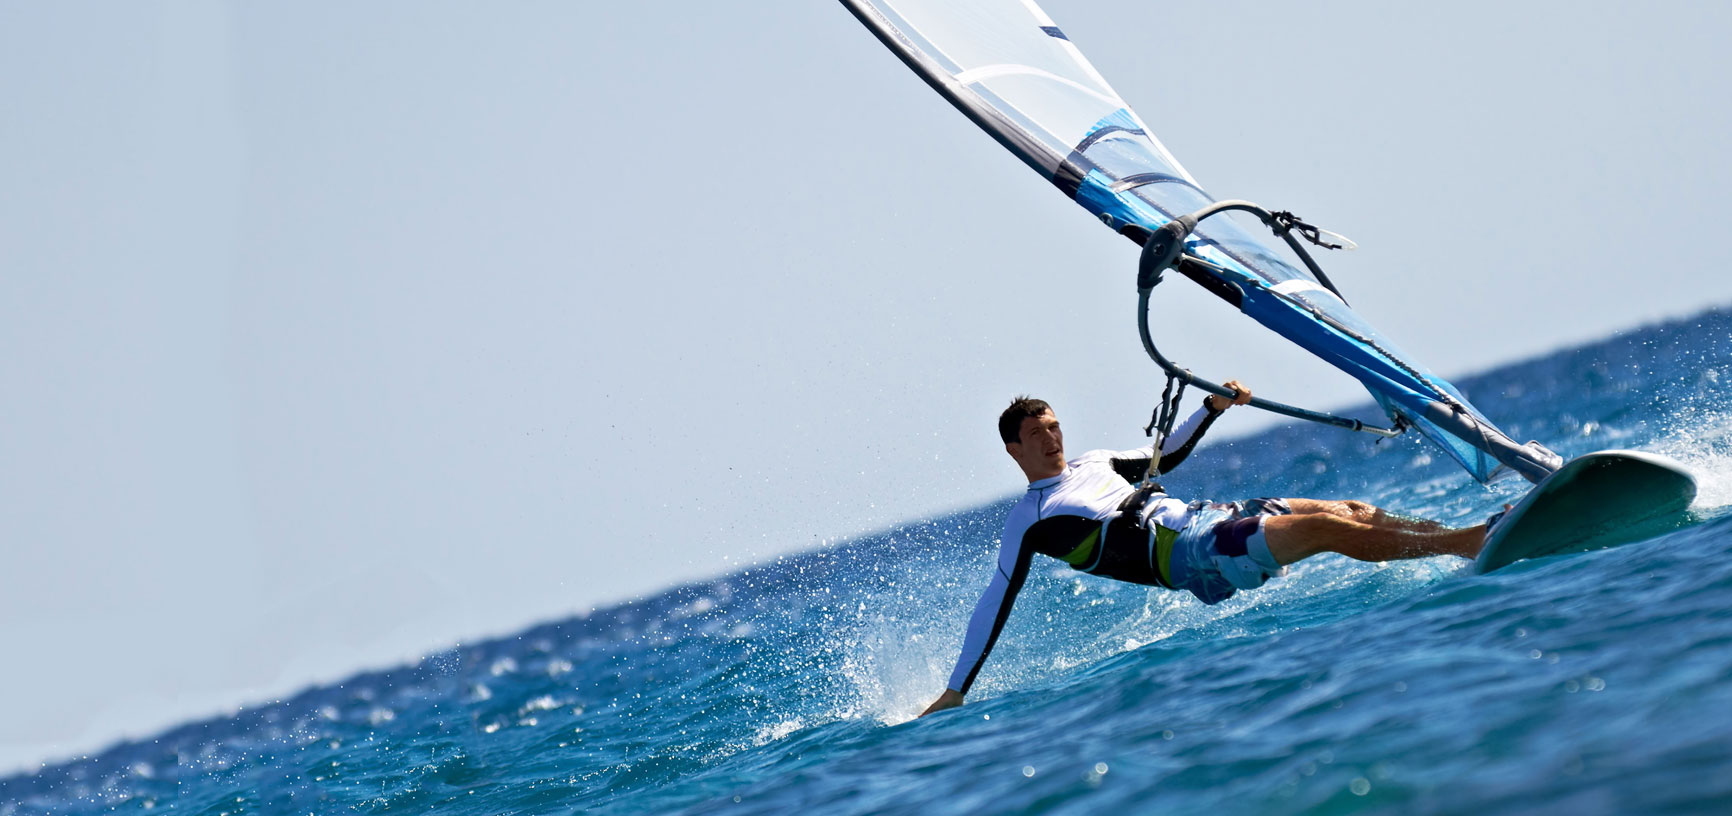 Main Image Surfing + Windsurfing Camp in Lanzarote